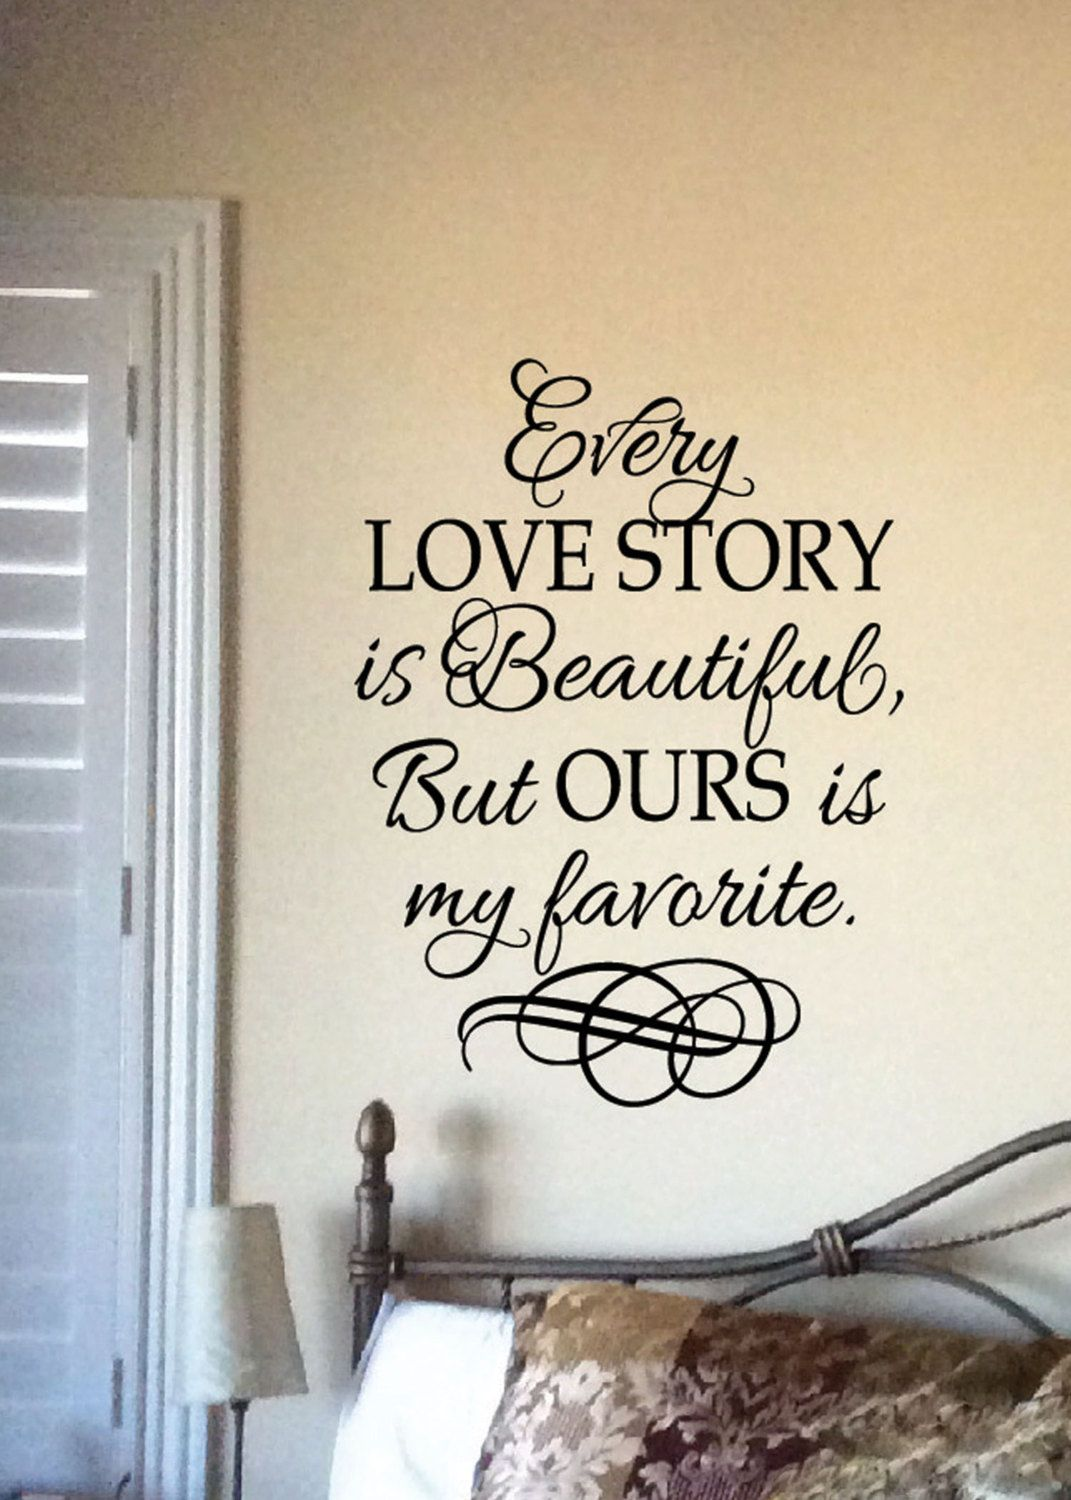 Master bedroom wall decor stickers  Every Love Story is Beautiful but ours is my favorite  vinyl wall